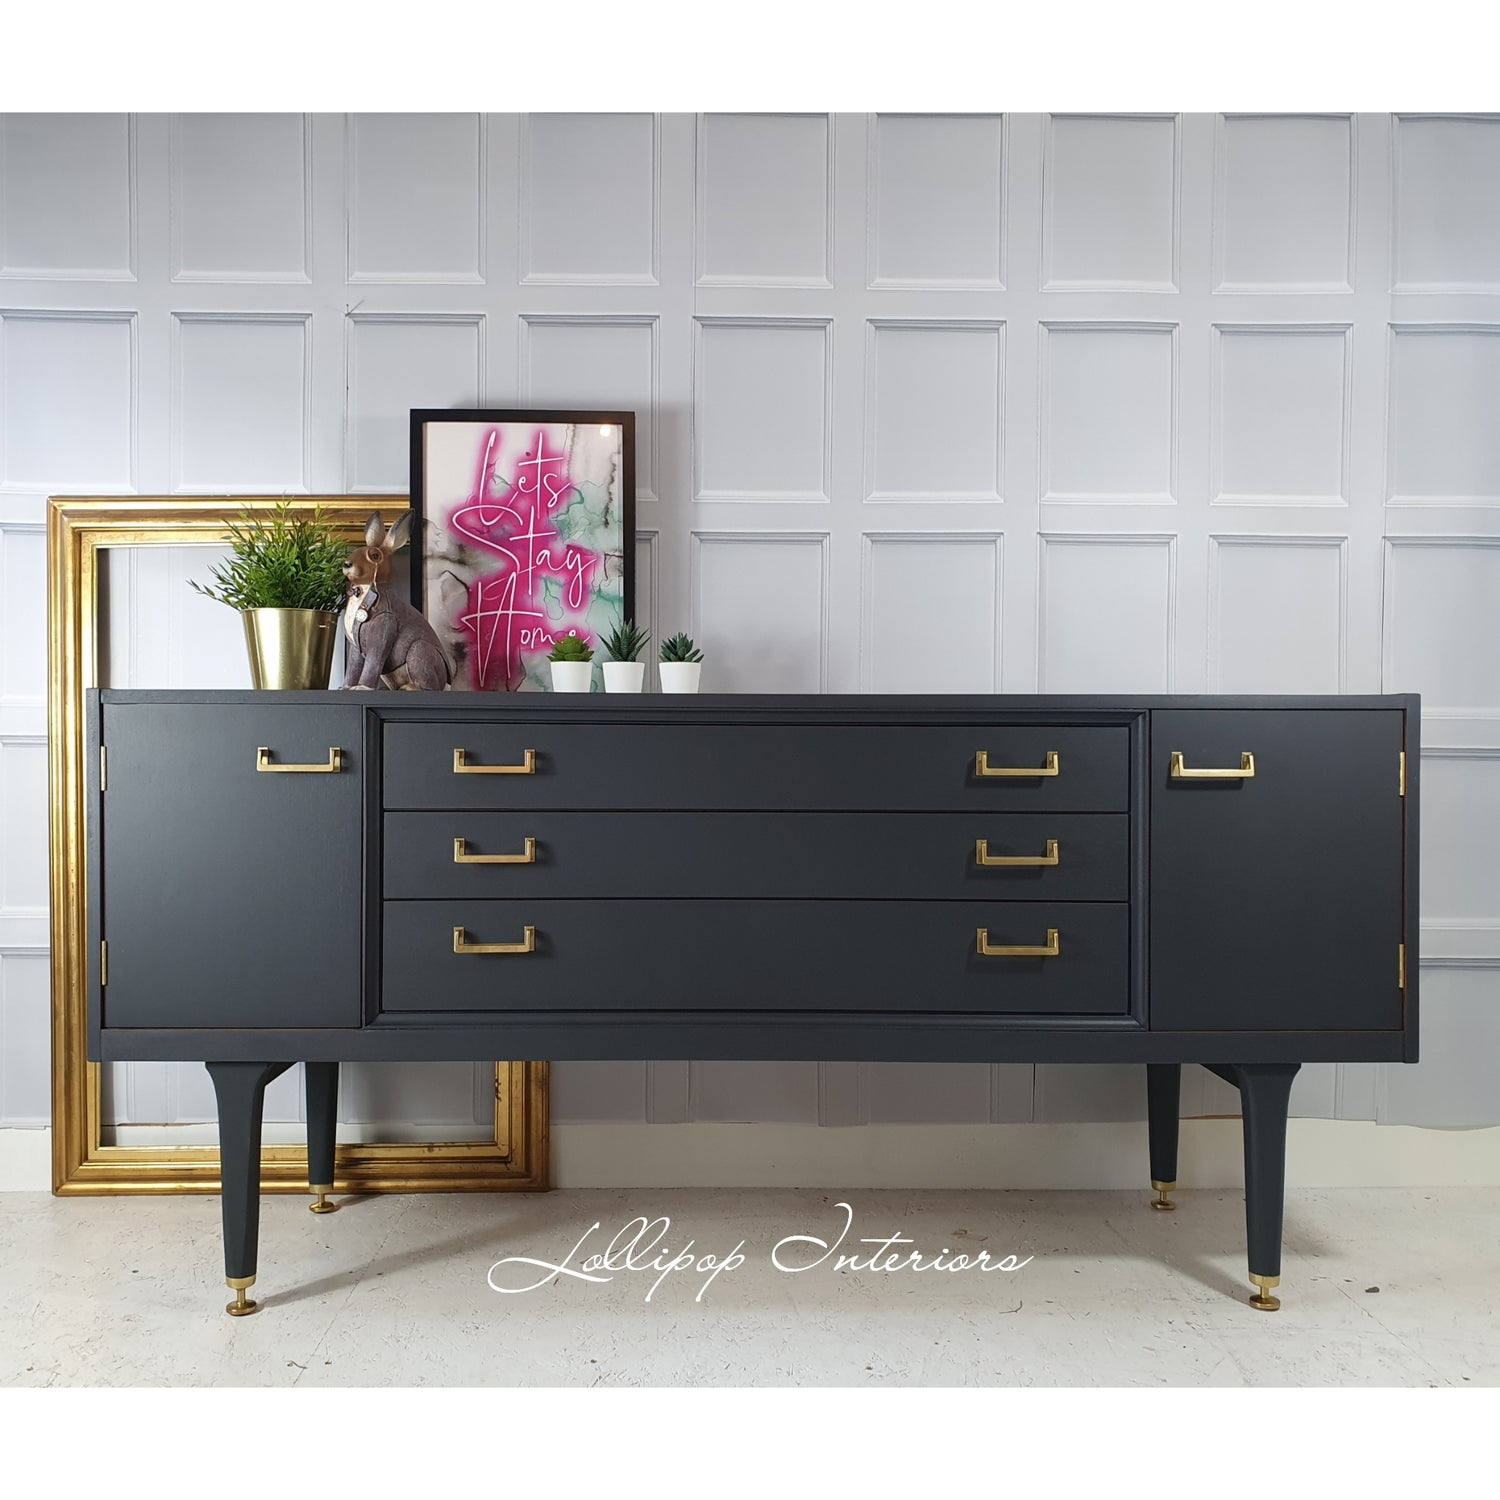 Image of Gplan sideboard in grey and gold